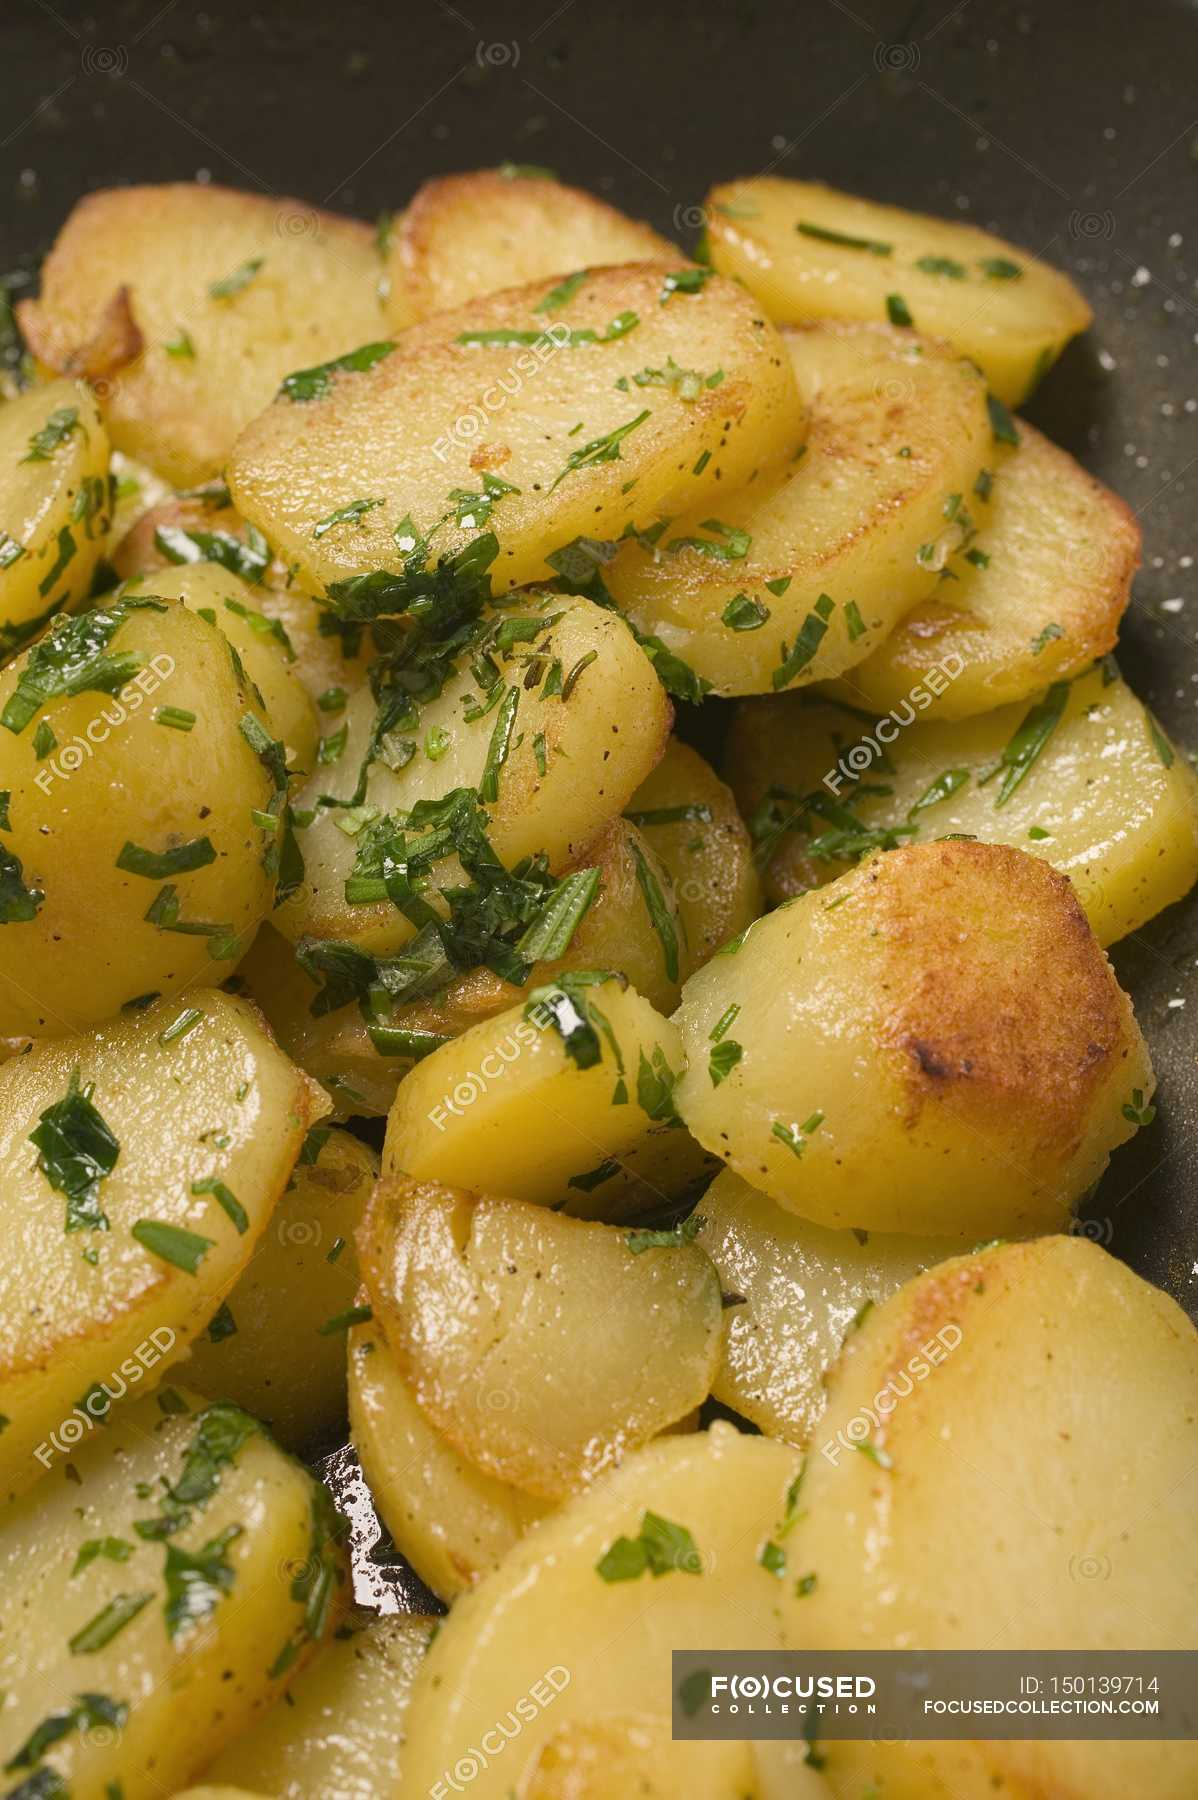 Close Up Of Sliced Fried Potatoes With Herbs Delicious Nutrition Stock Photo 150139714